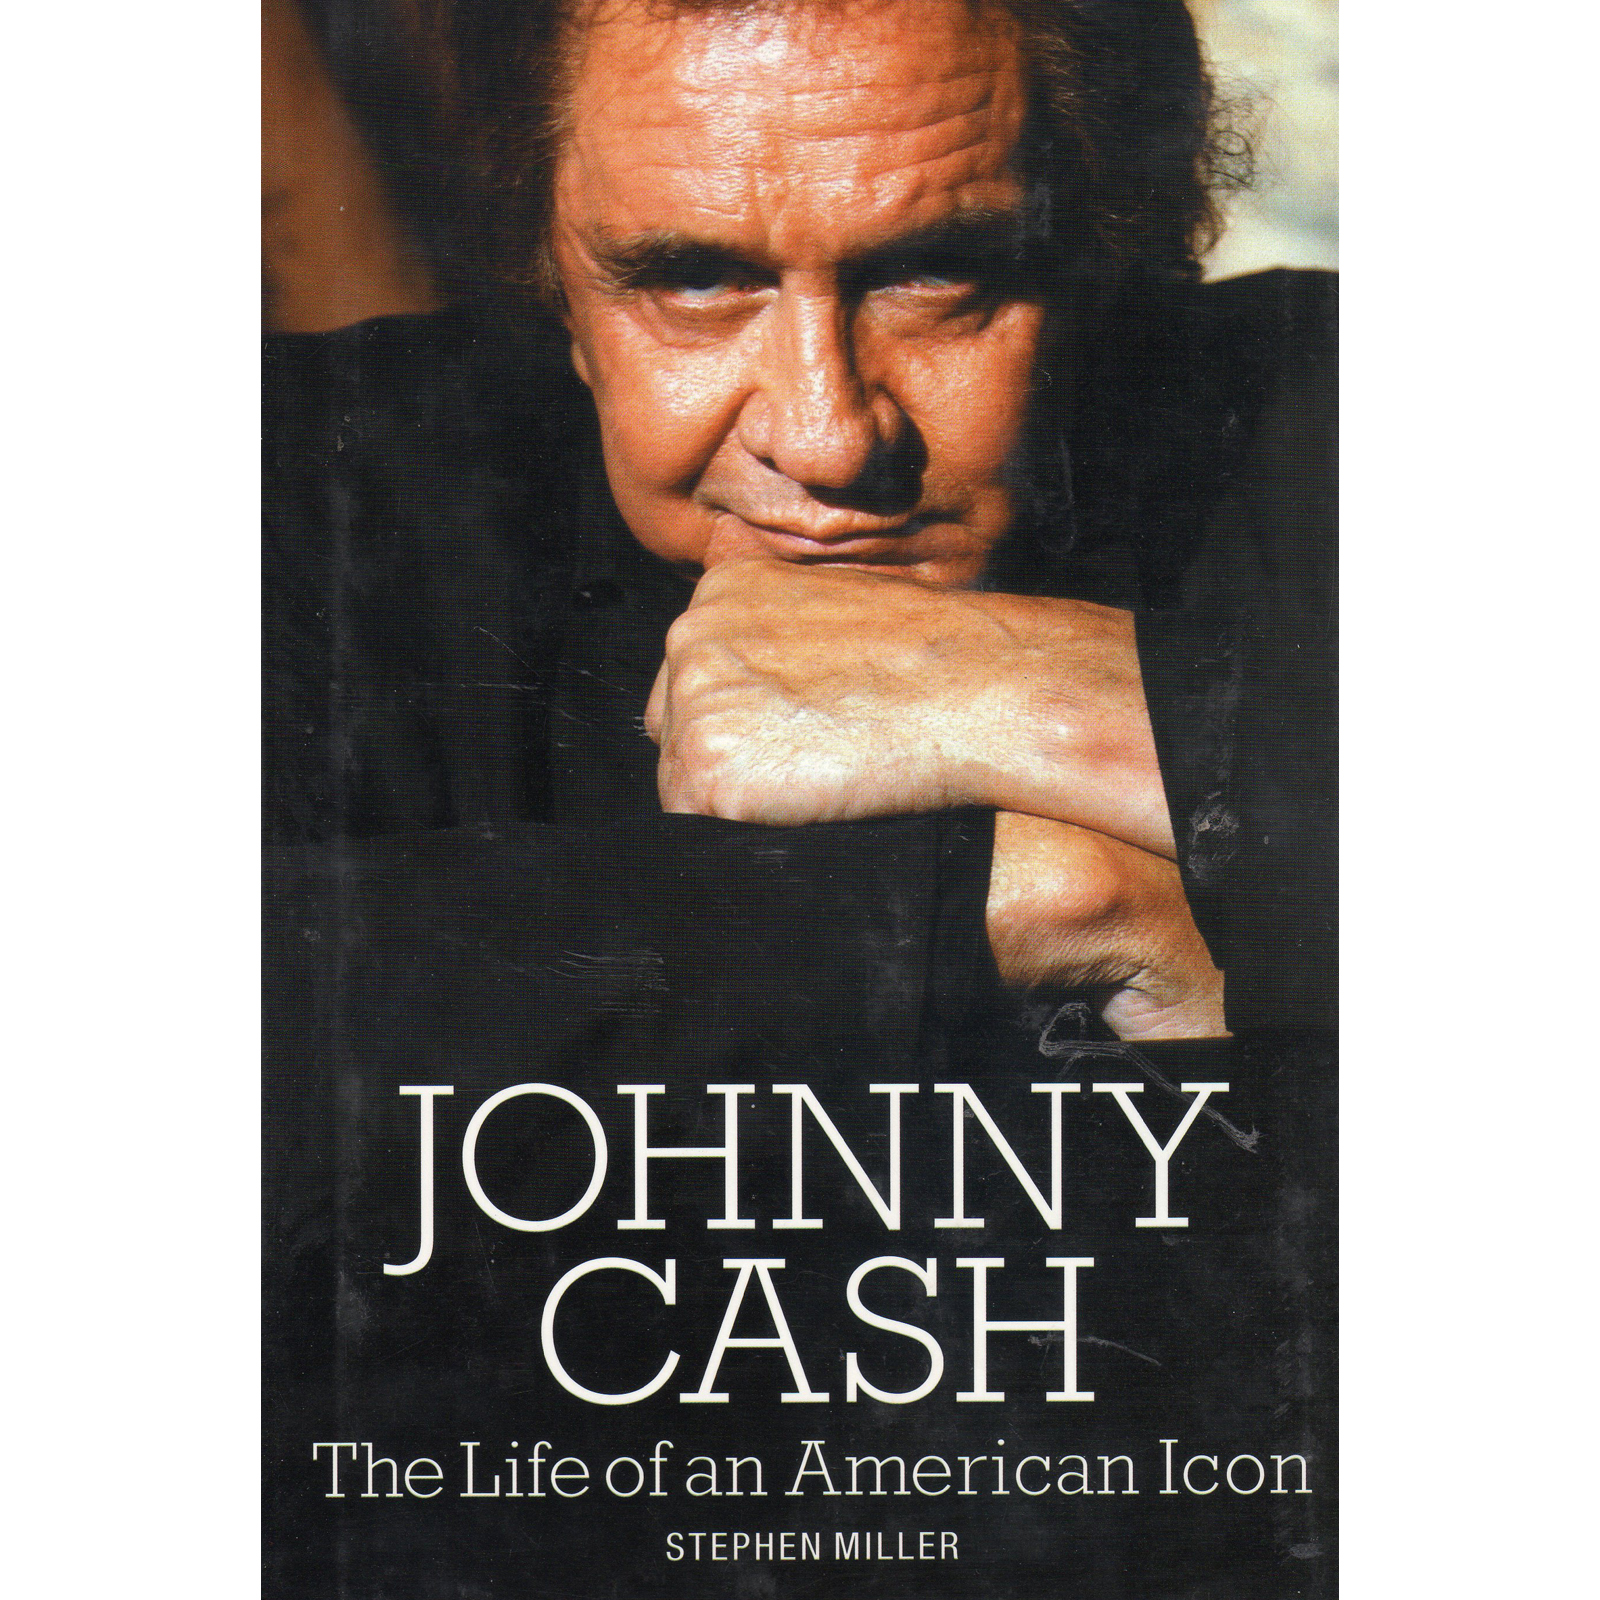 JOHNNY CASH The Life Of An American Icon Book by STEPHEN MILLER